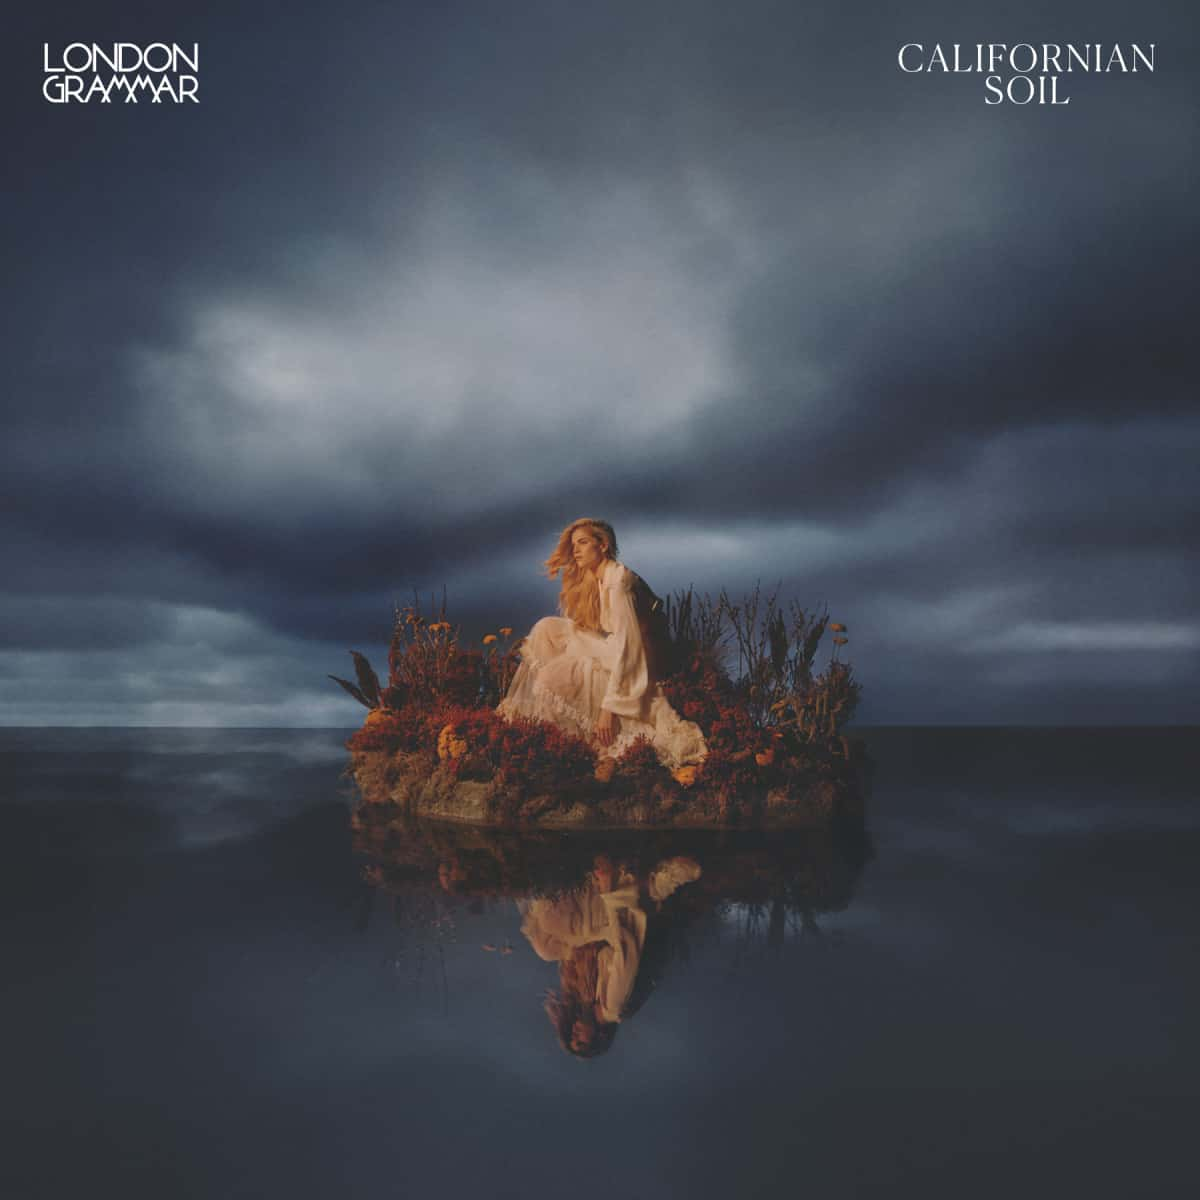 Californian Soil by London Grammar album review by Caillou Pettis for Northern Transmissions